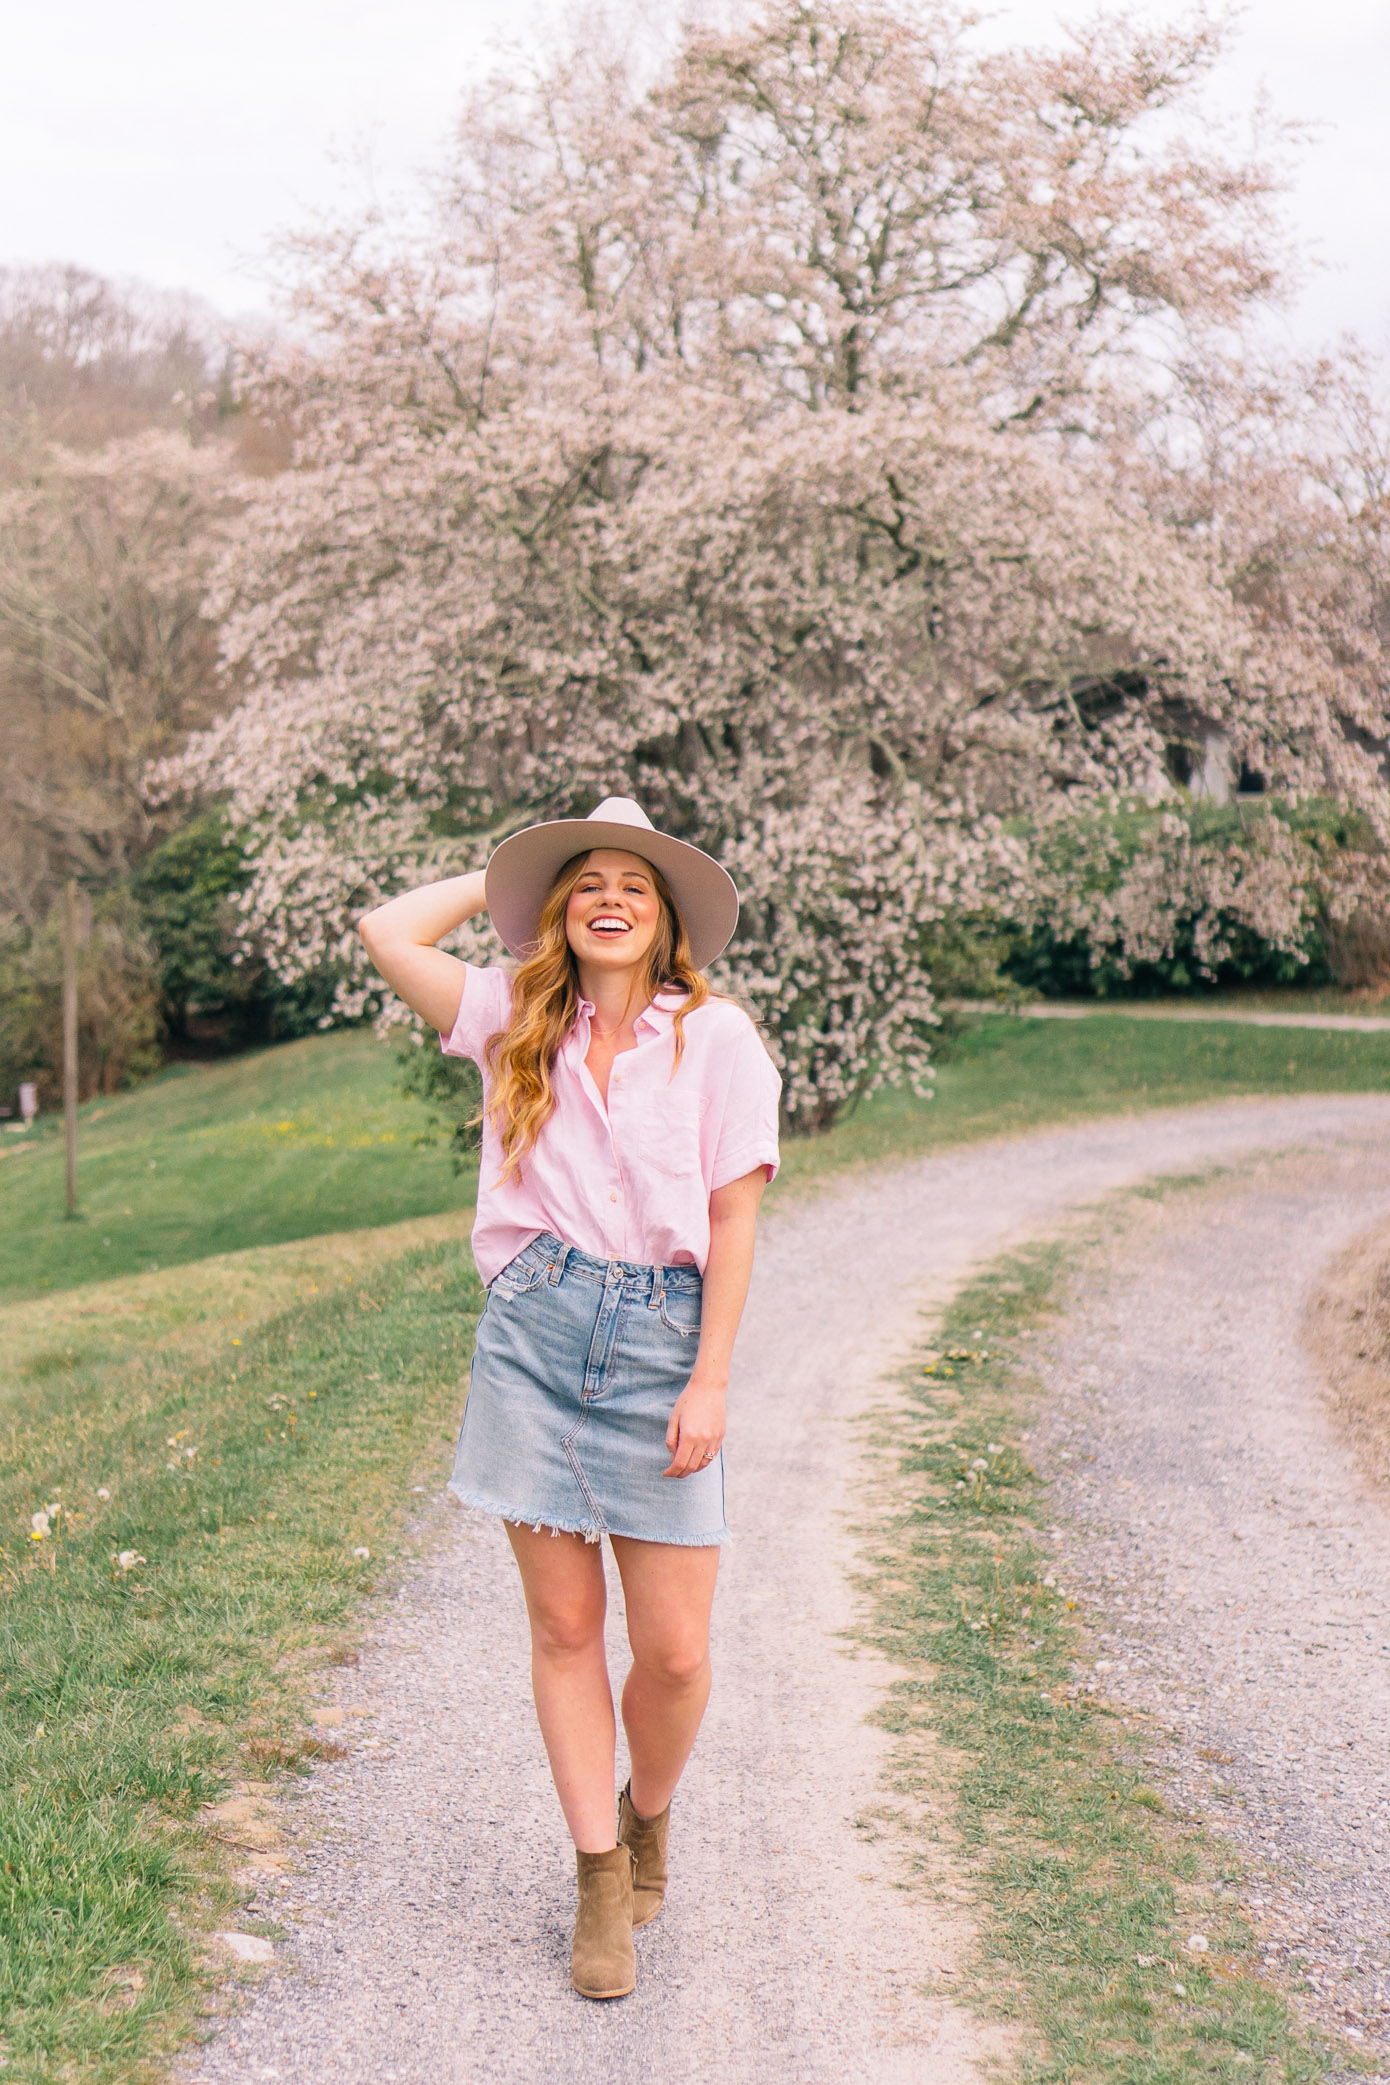 Ranch Weekend Style, How to Style a Denim Skirt this Summer | Louella Reese Life & Style Blog